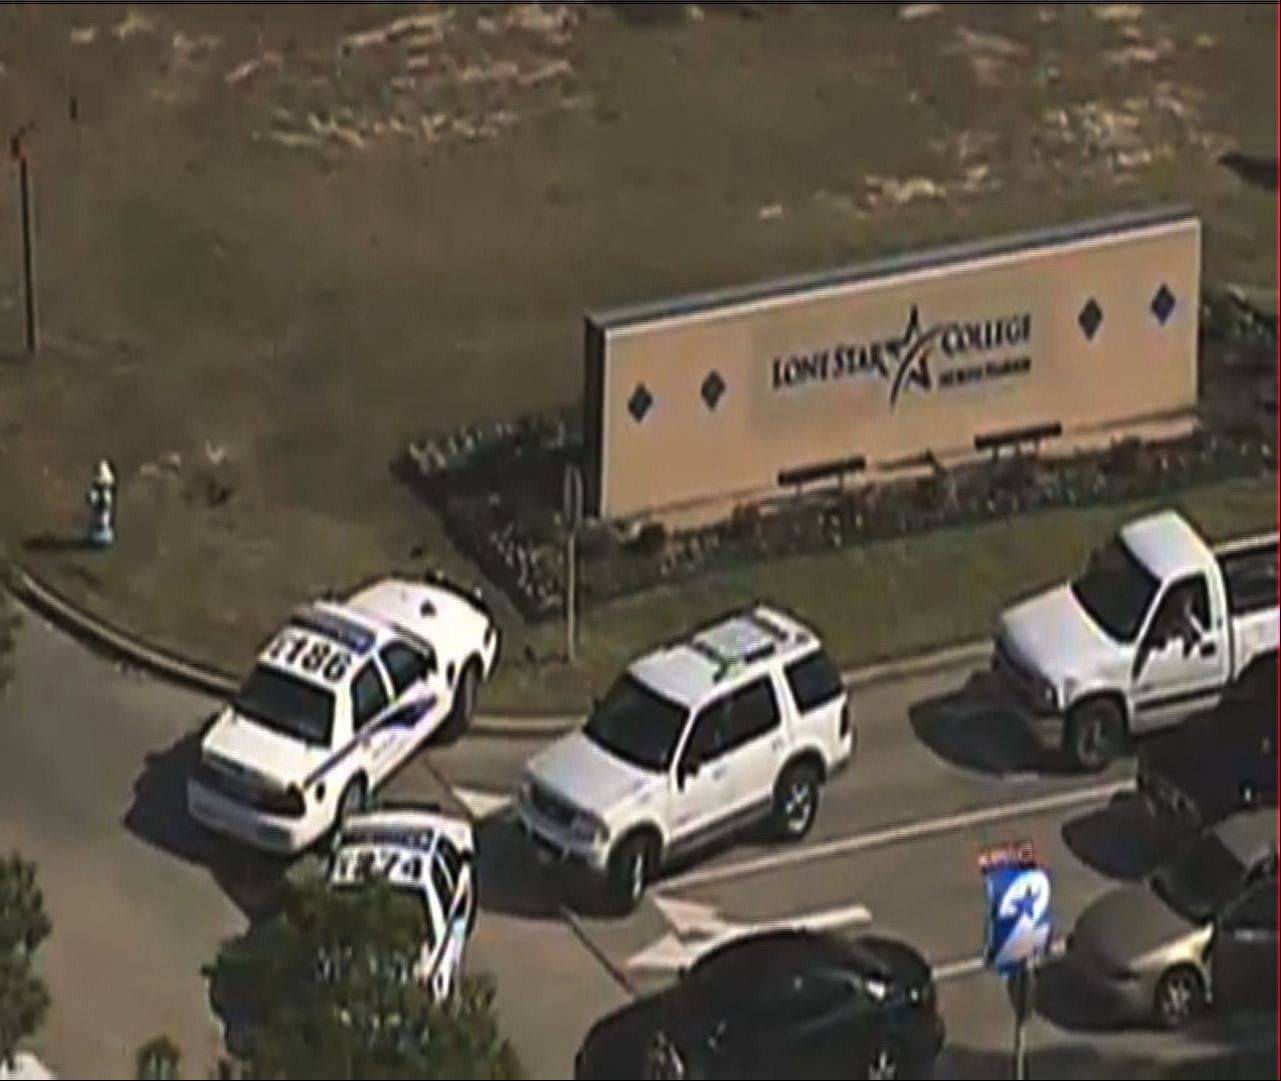 Police vehicles block an entrance to Lone Star College Tuesday in Houston, where gunfire erupted after two people argued, police said.